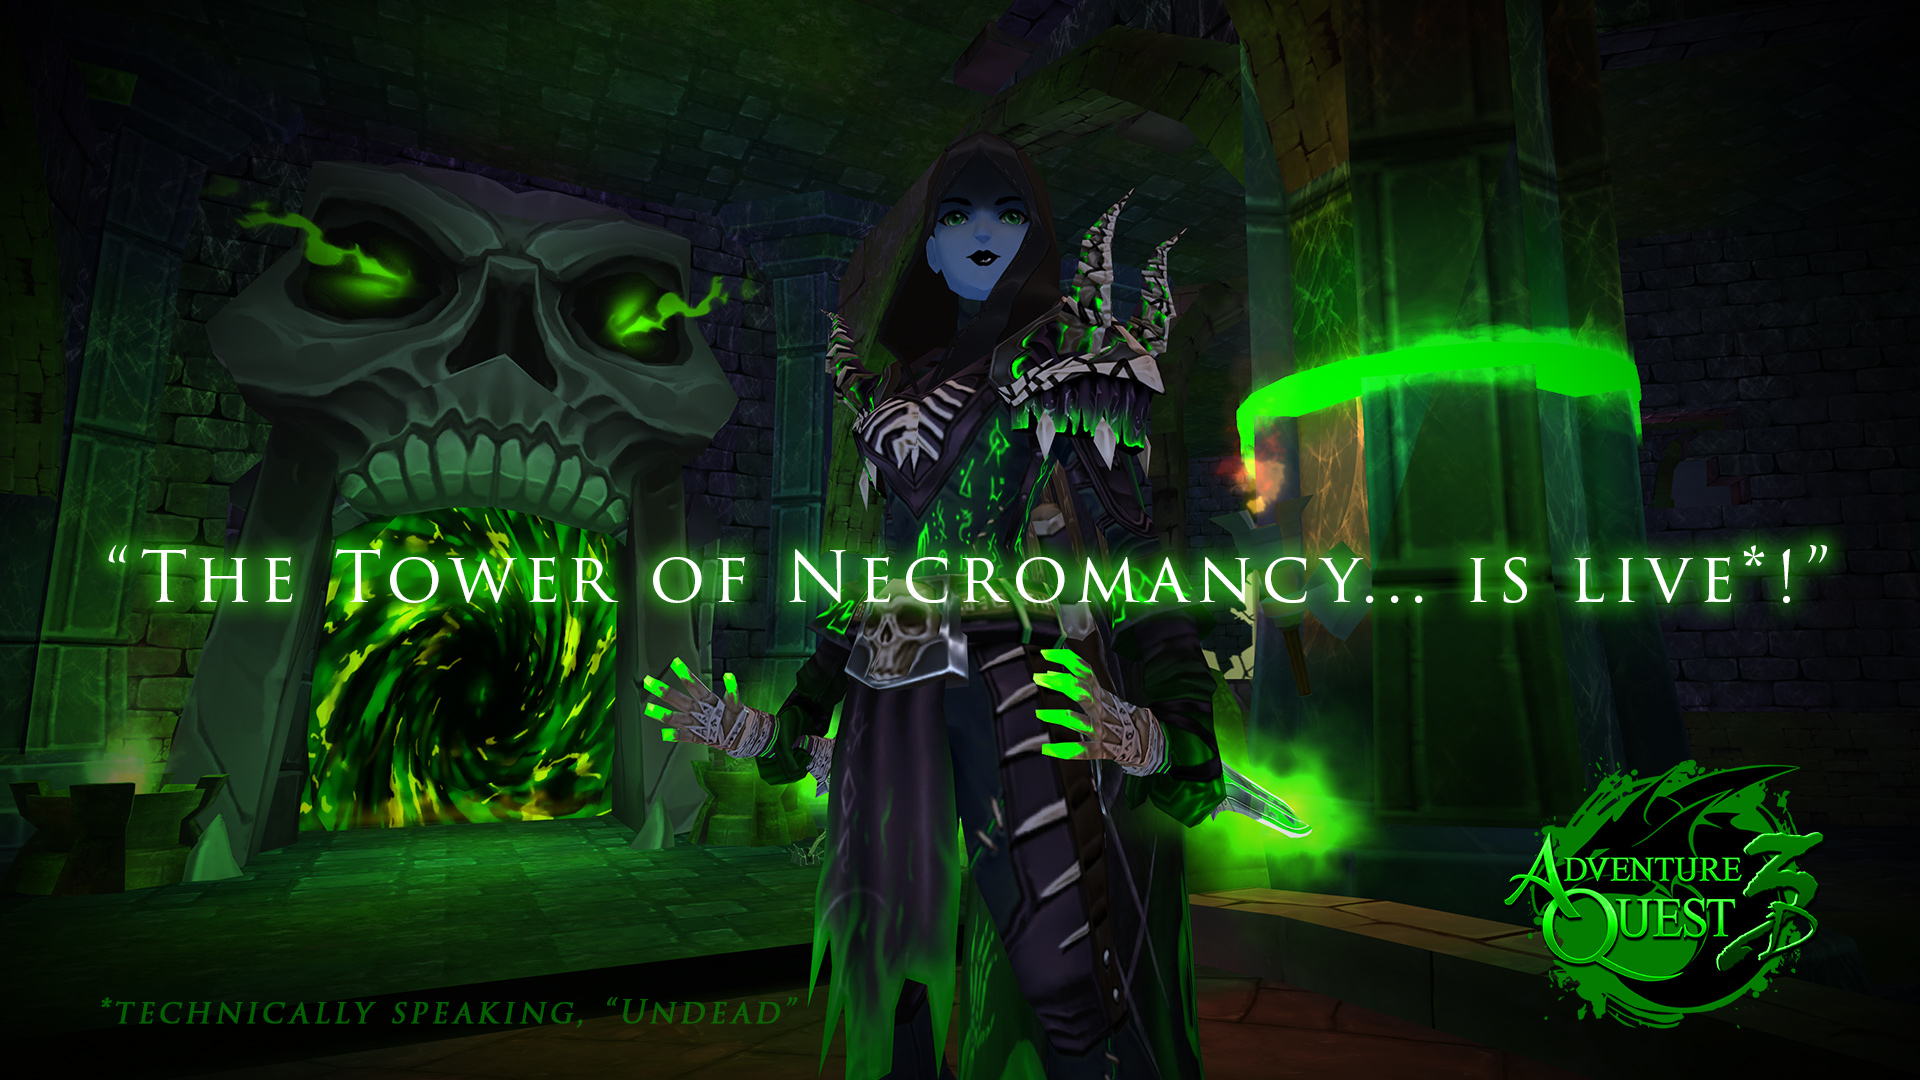 The Tower of NEcromancy is live!